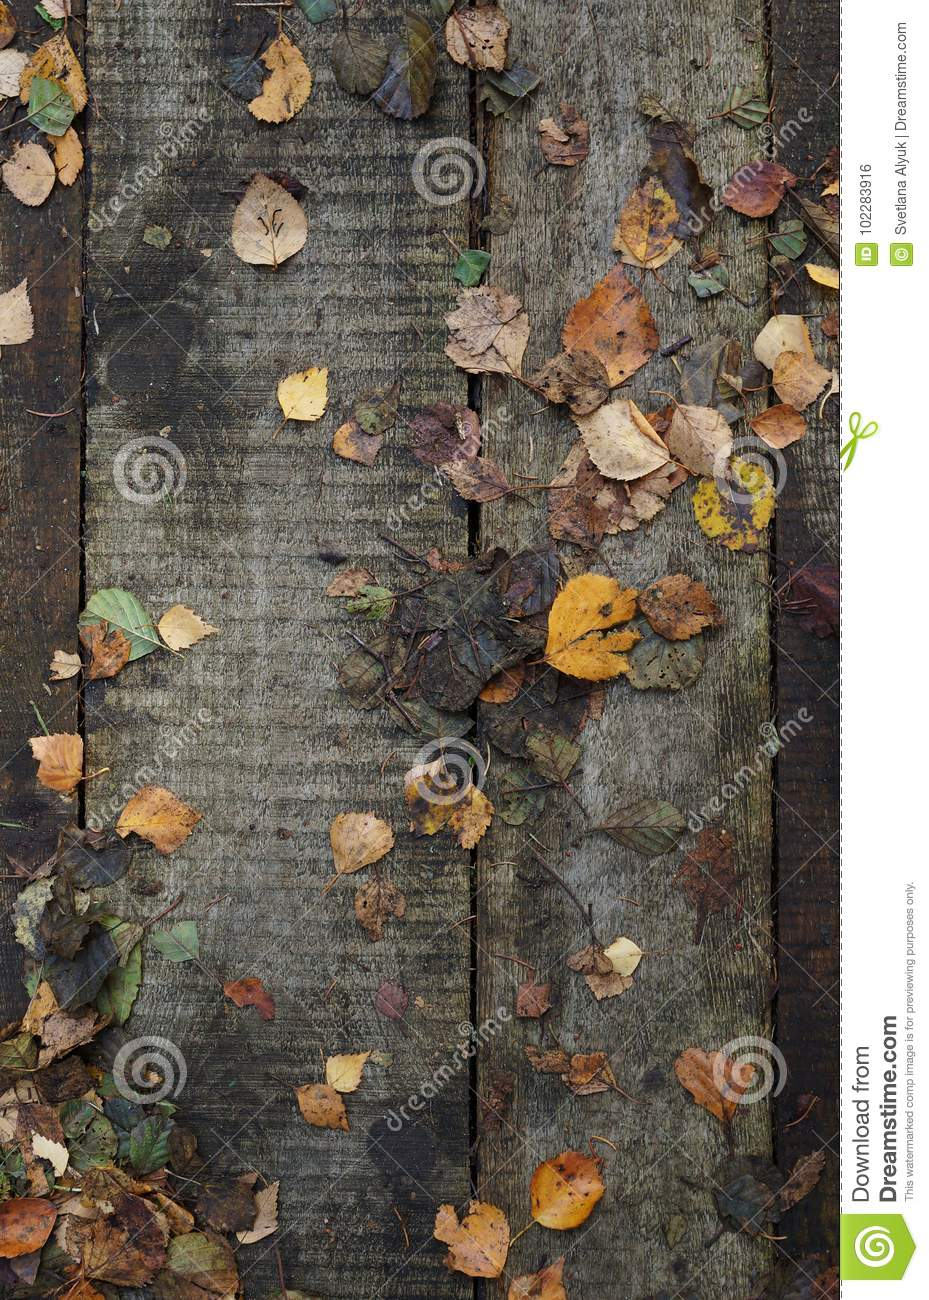 Wooden pathway with dry autumn leaves background